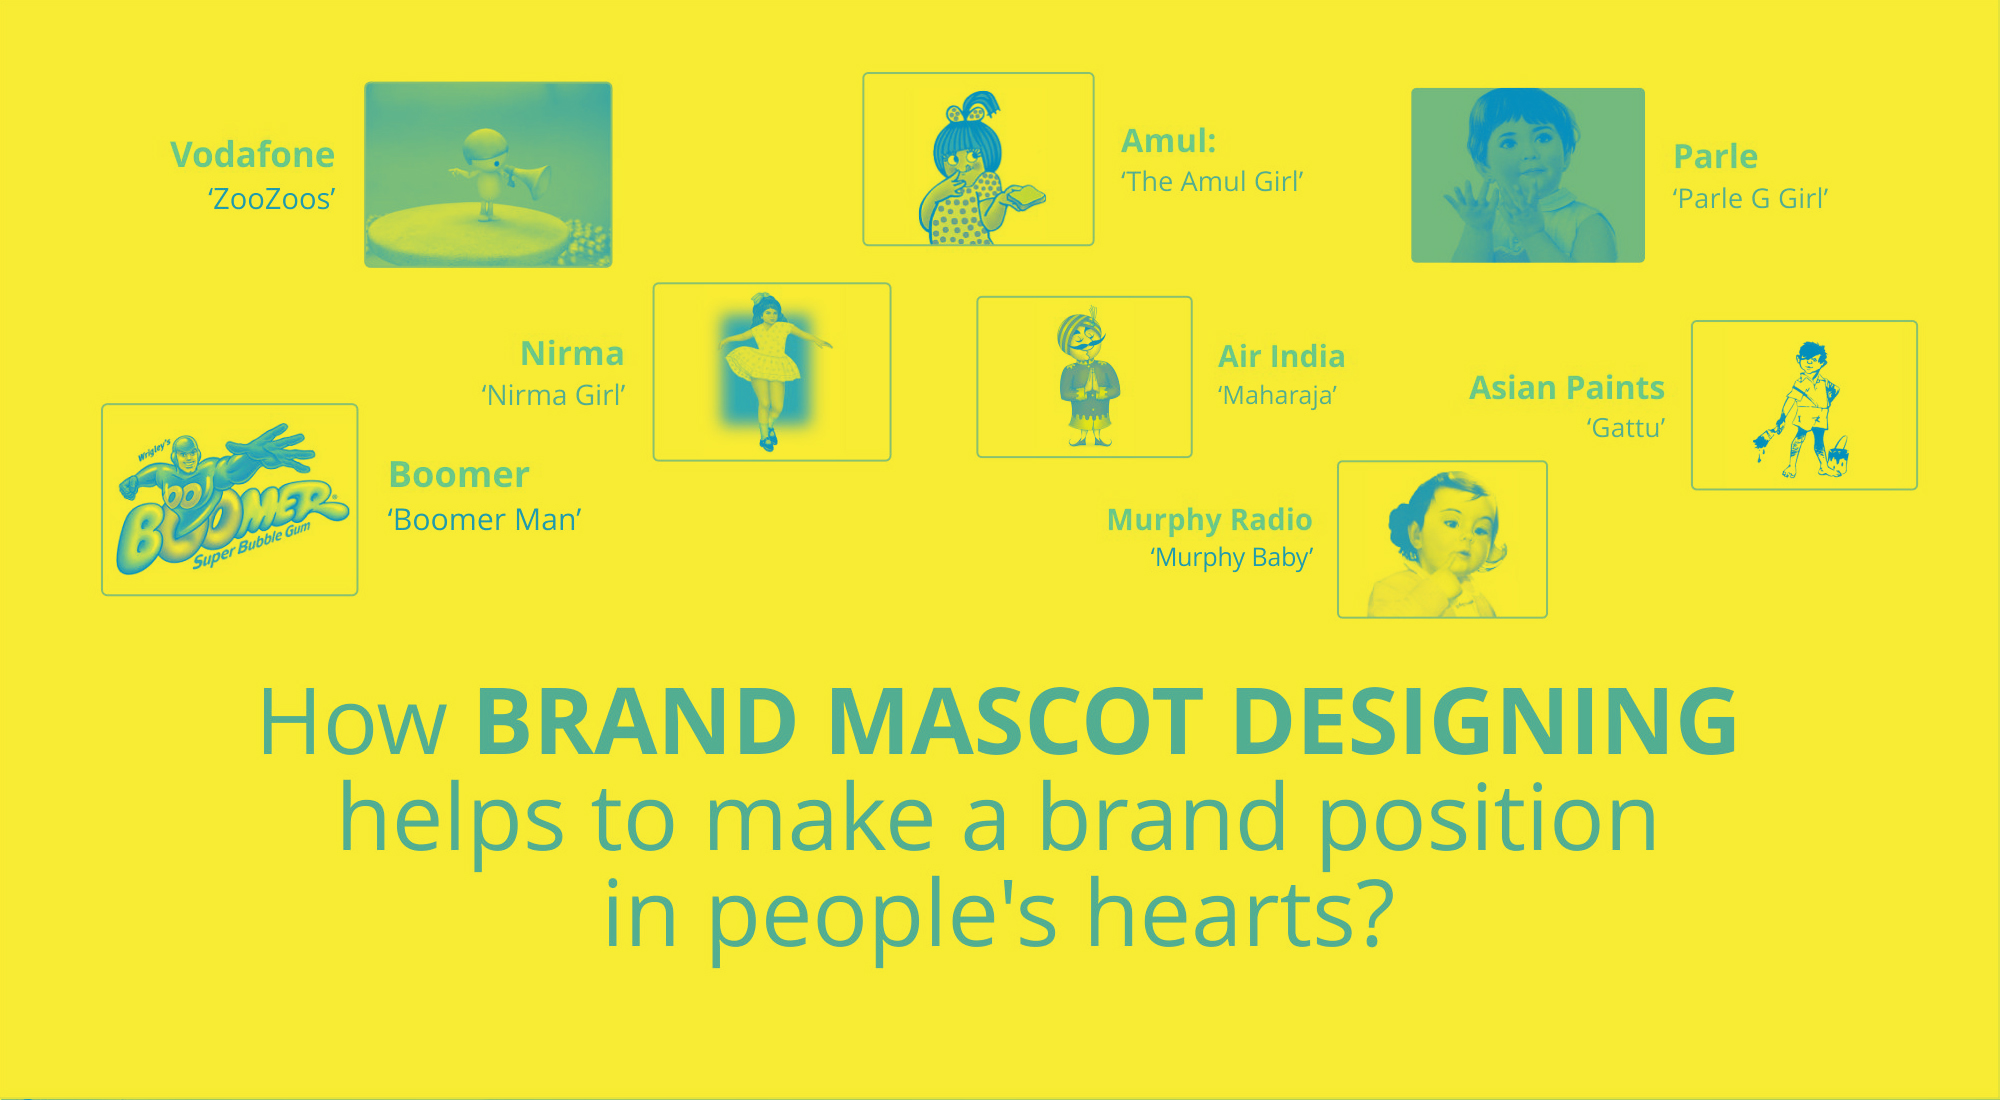 How Brand Mascot Designing Helps to Make a Brand Position in People's Hearts